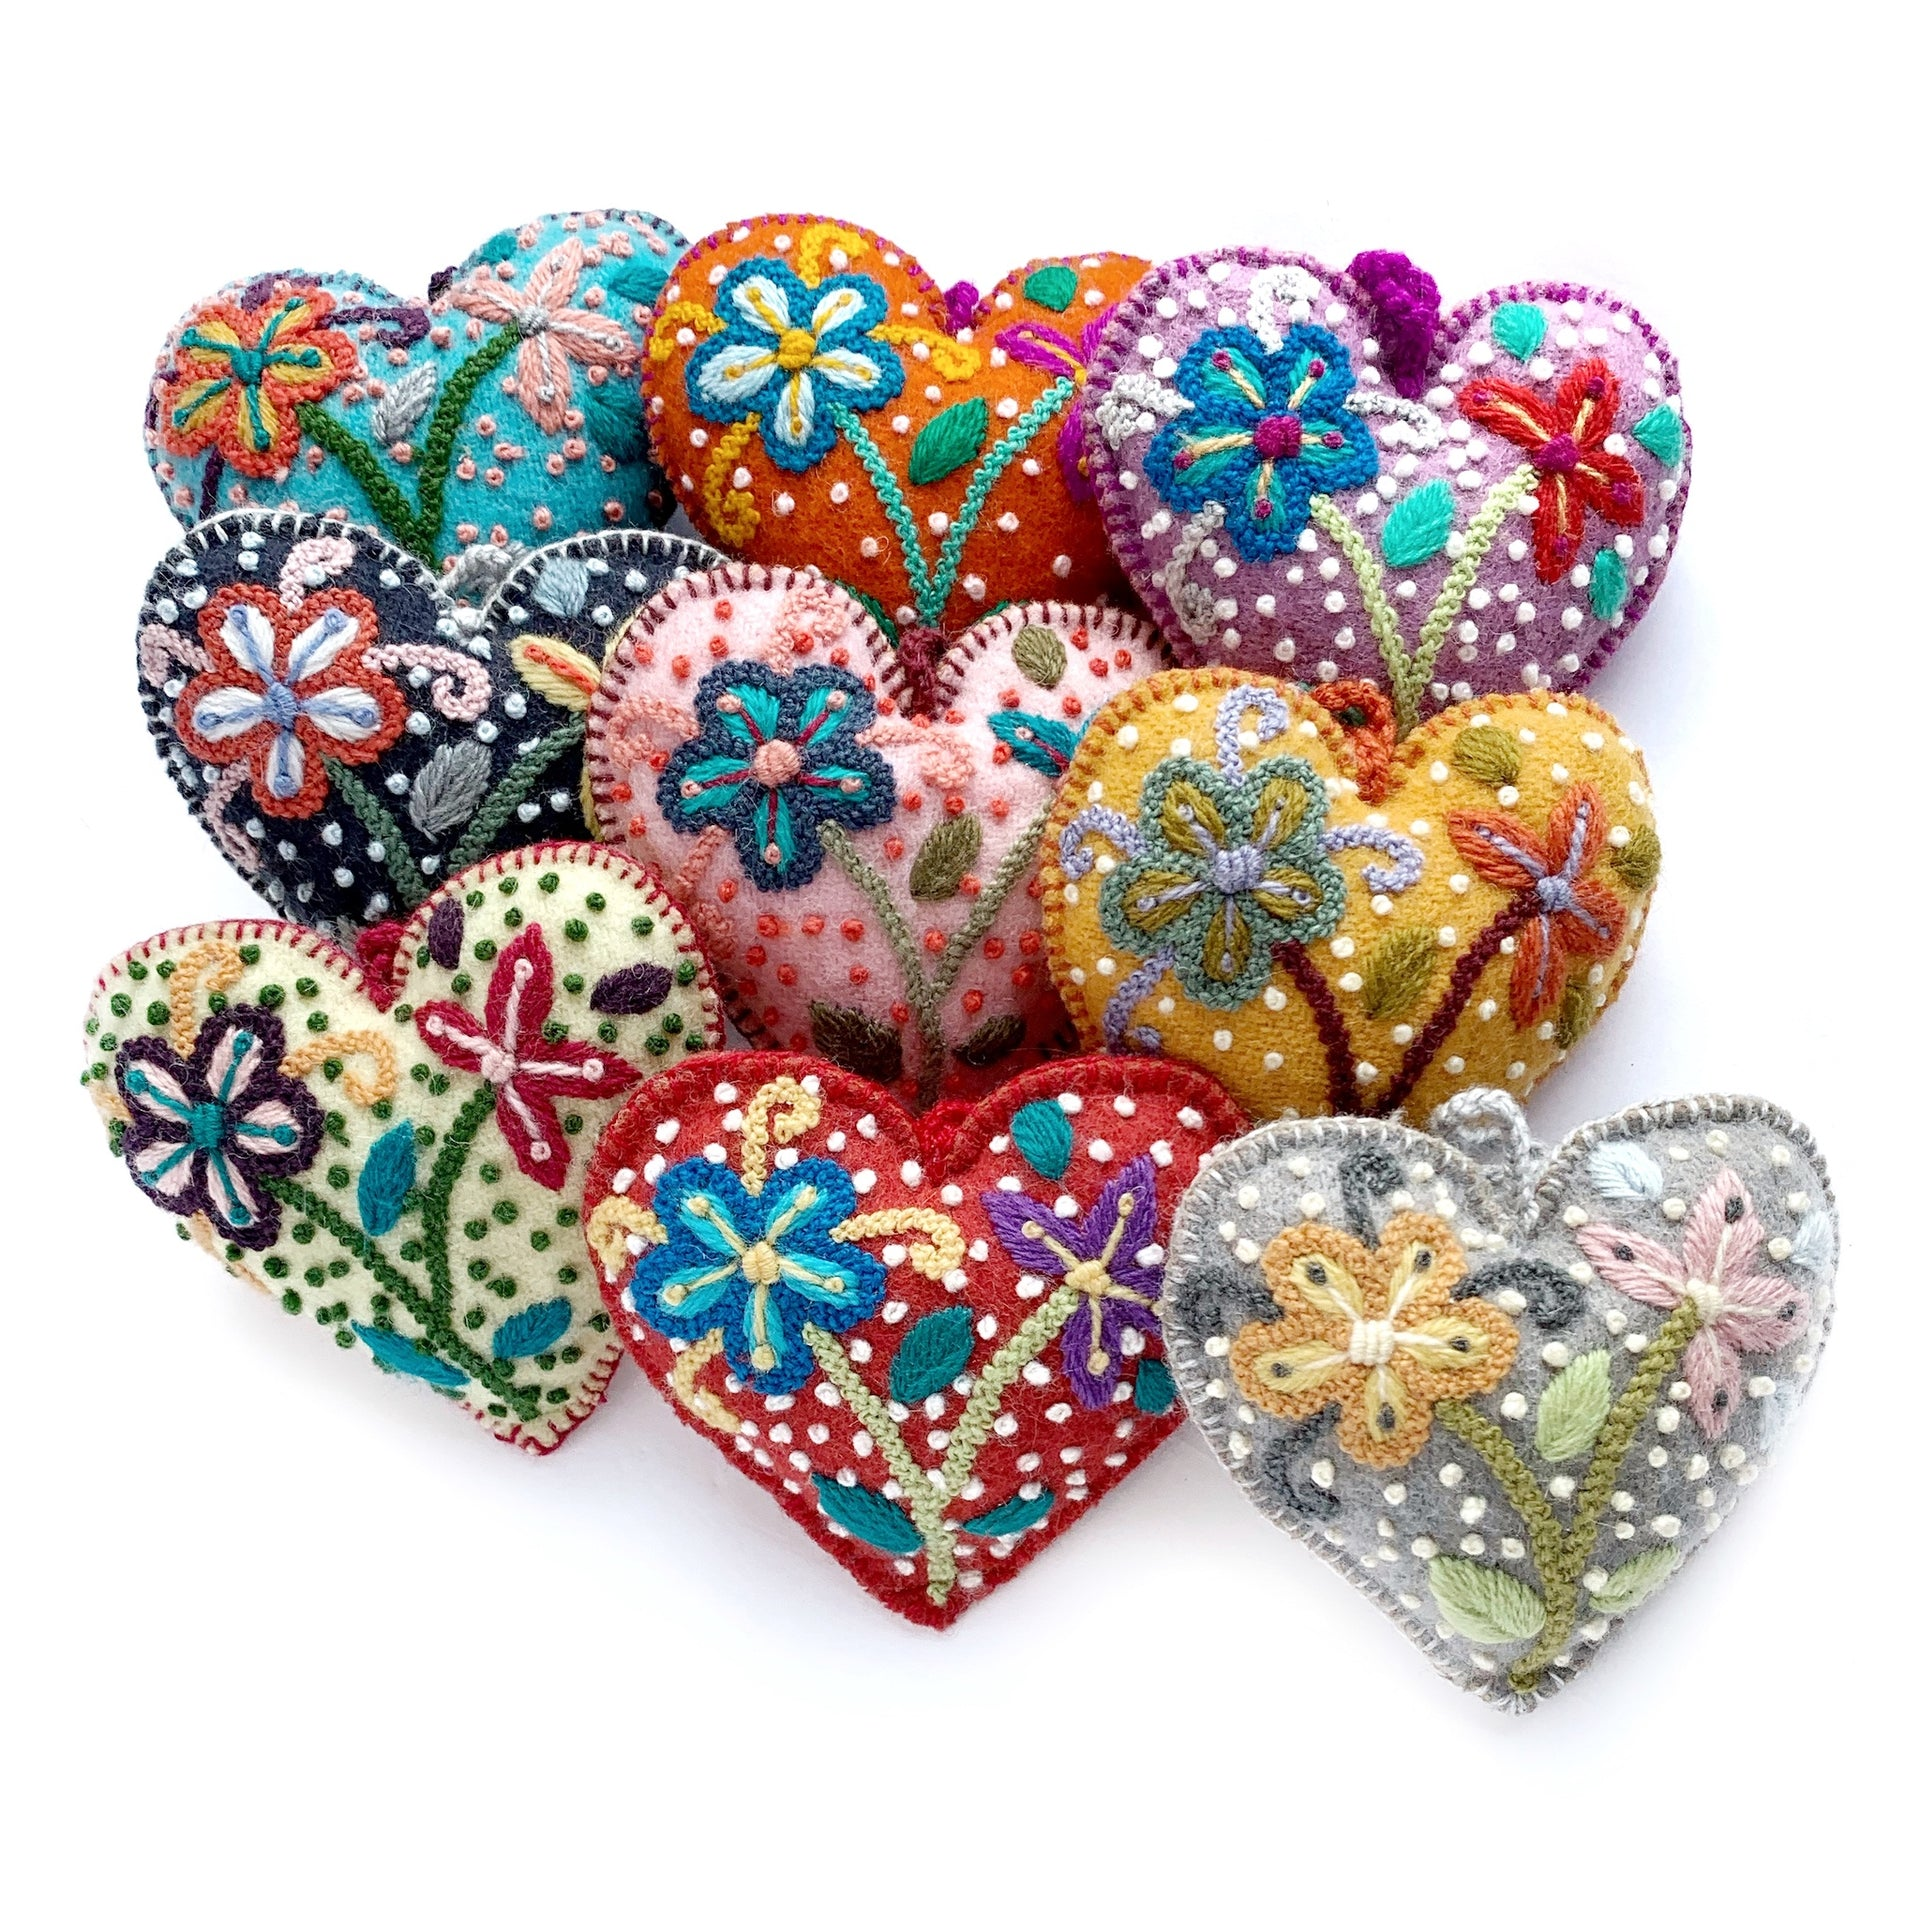 Colorful Heart Ornament, Embroidered Wool